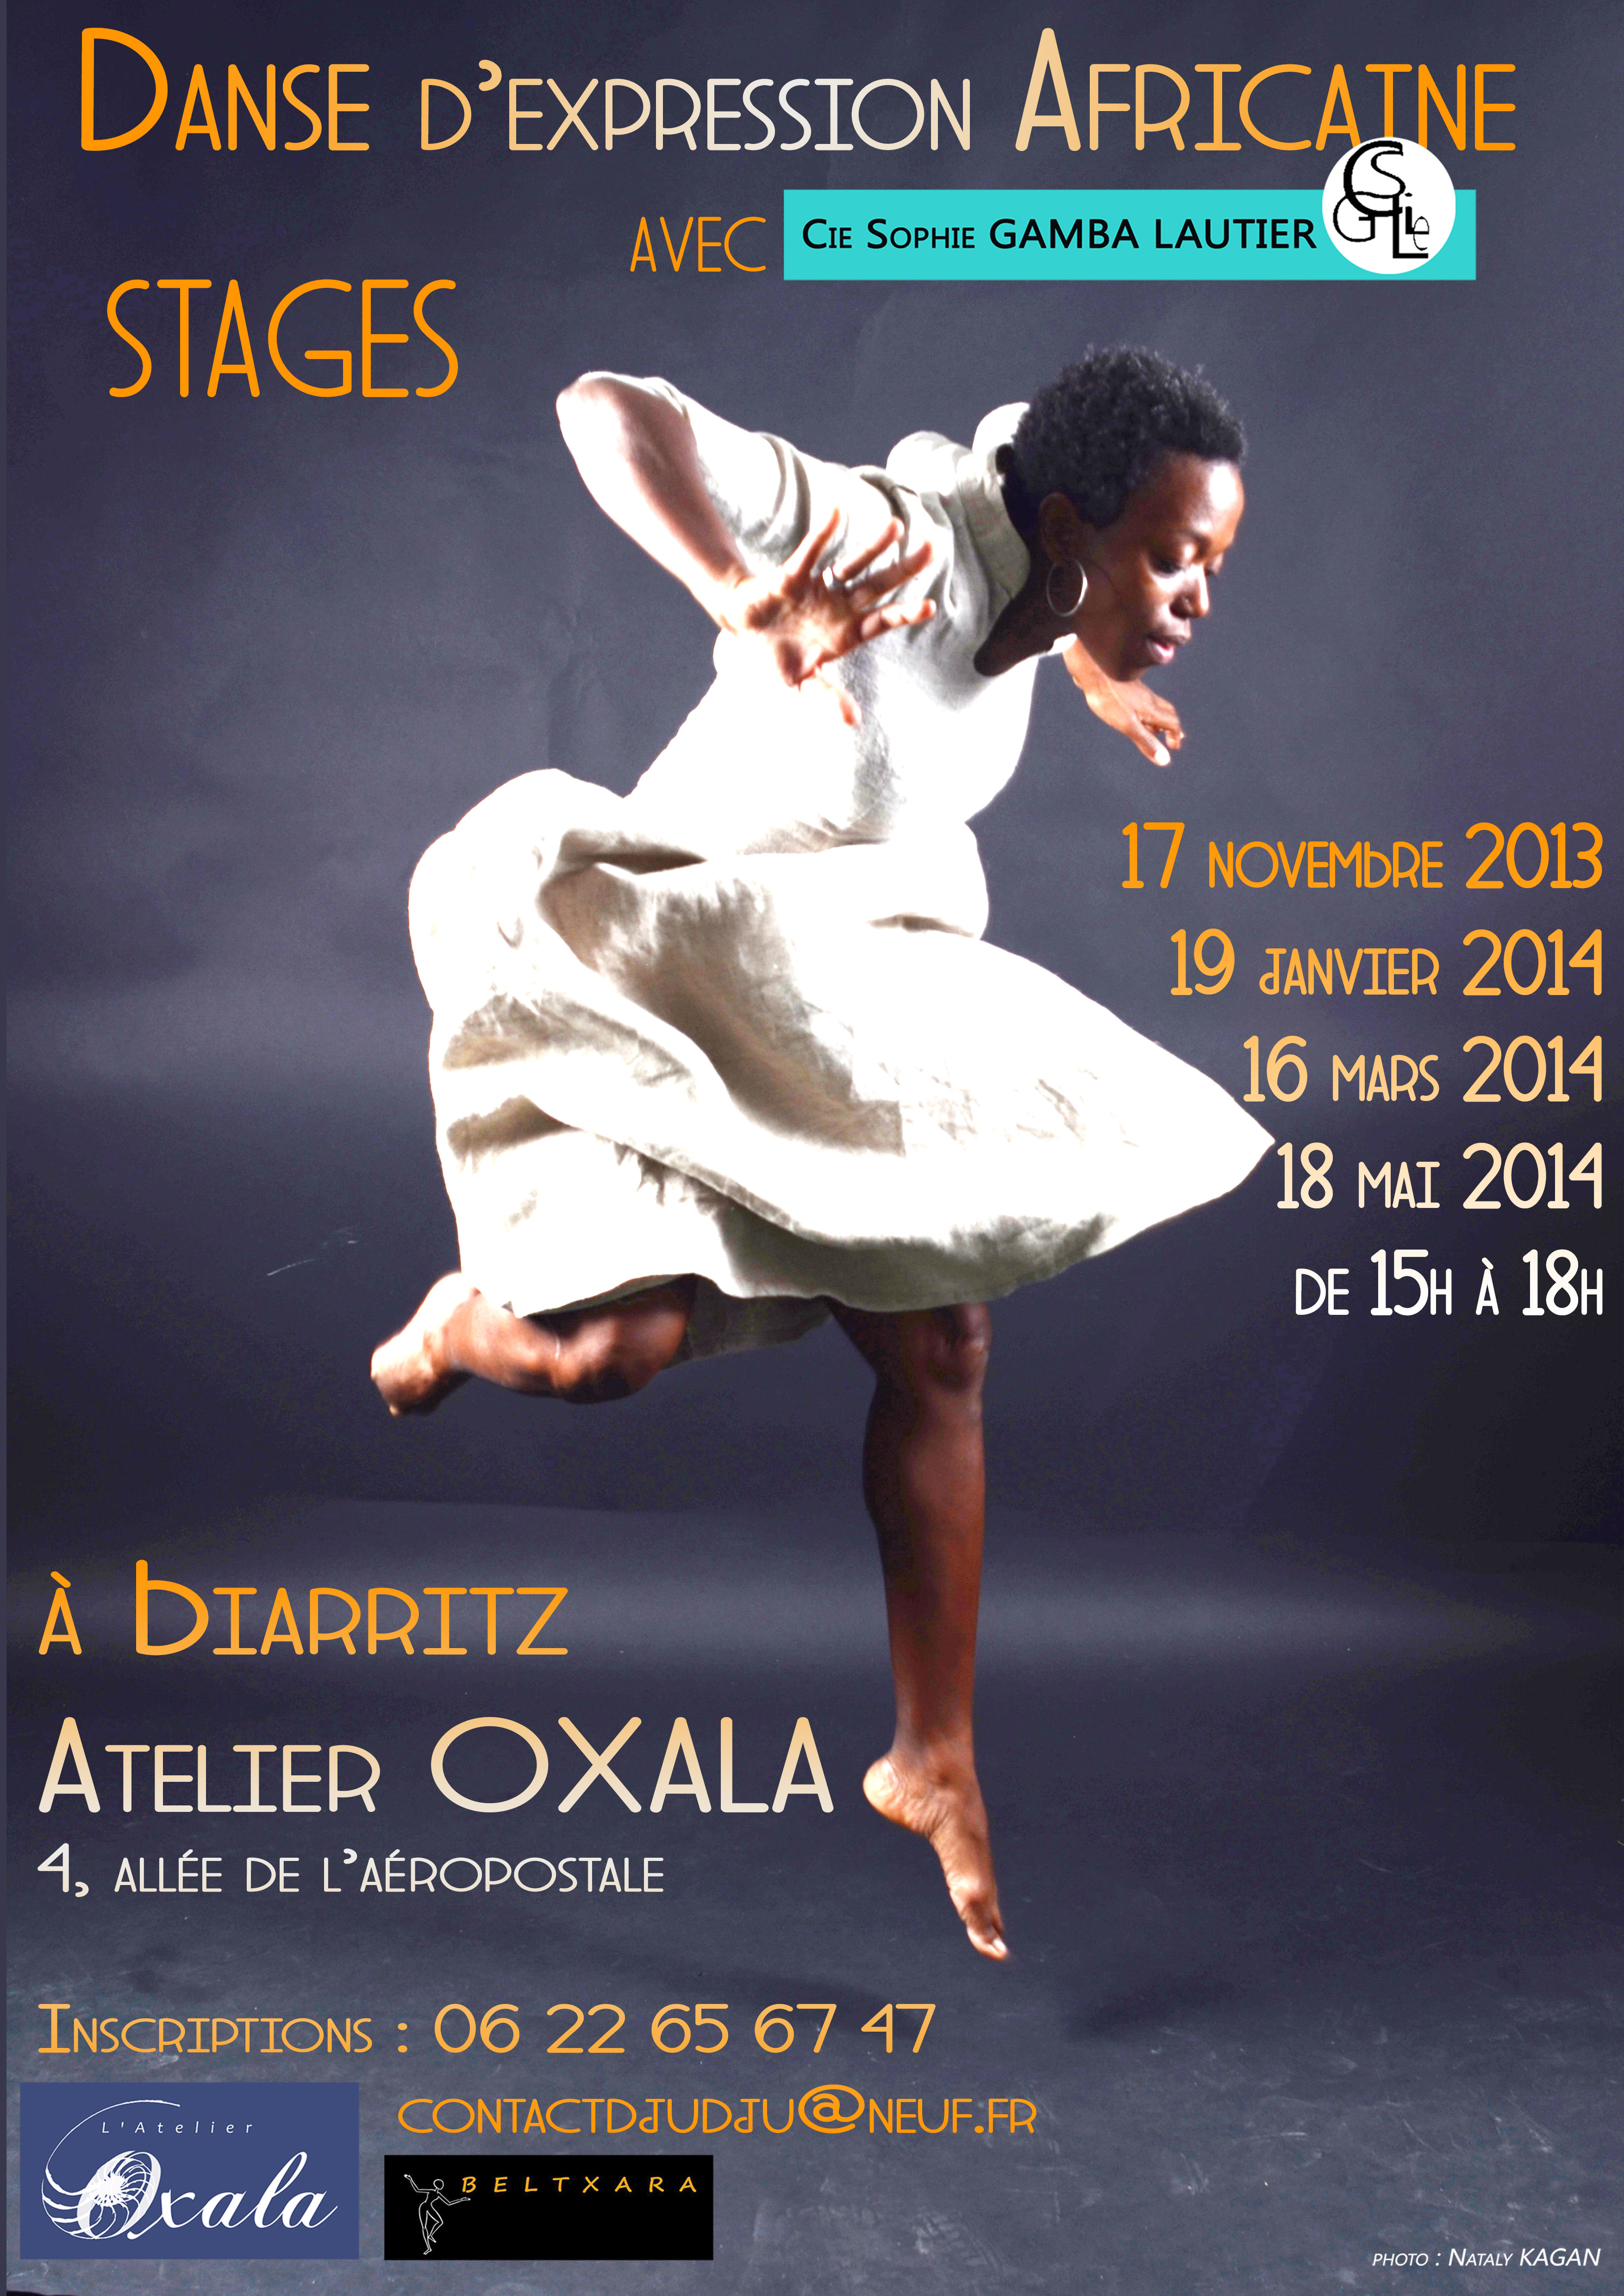 Cycle de stages de danse africaine Biarritz